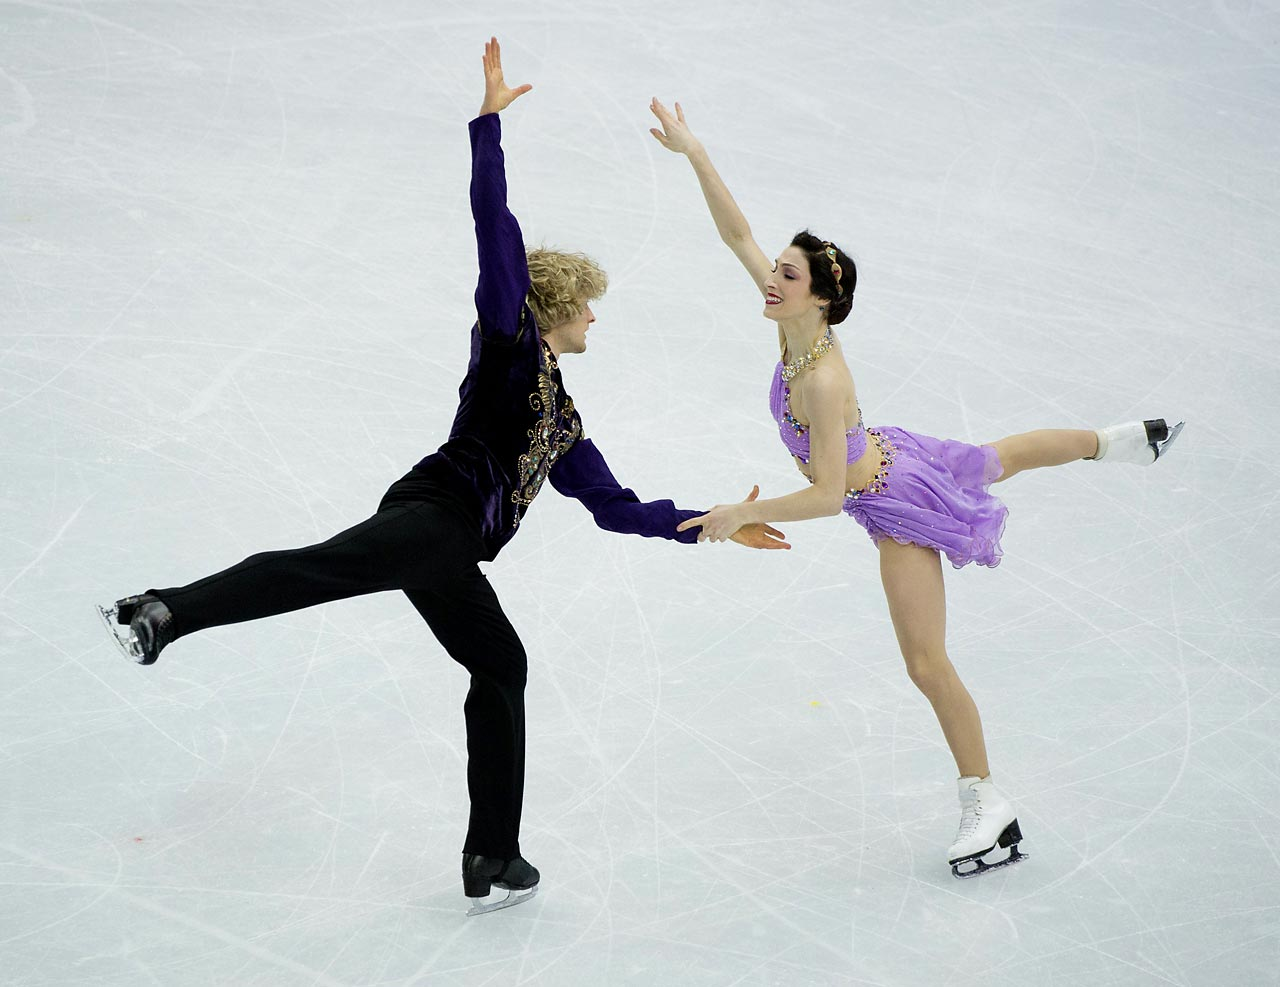 Gold: Figure Skating - Mixed Ice Dance